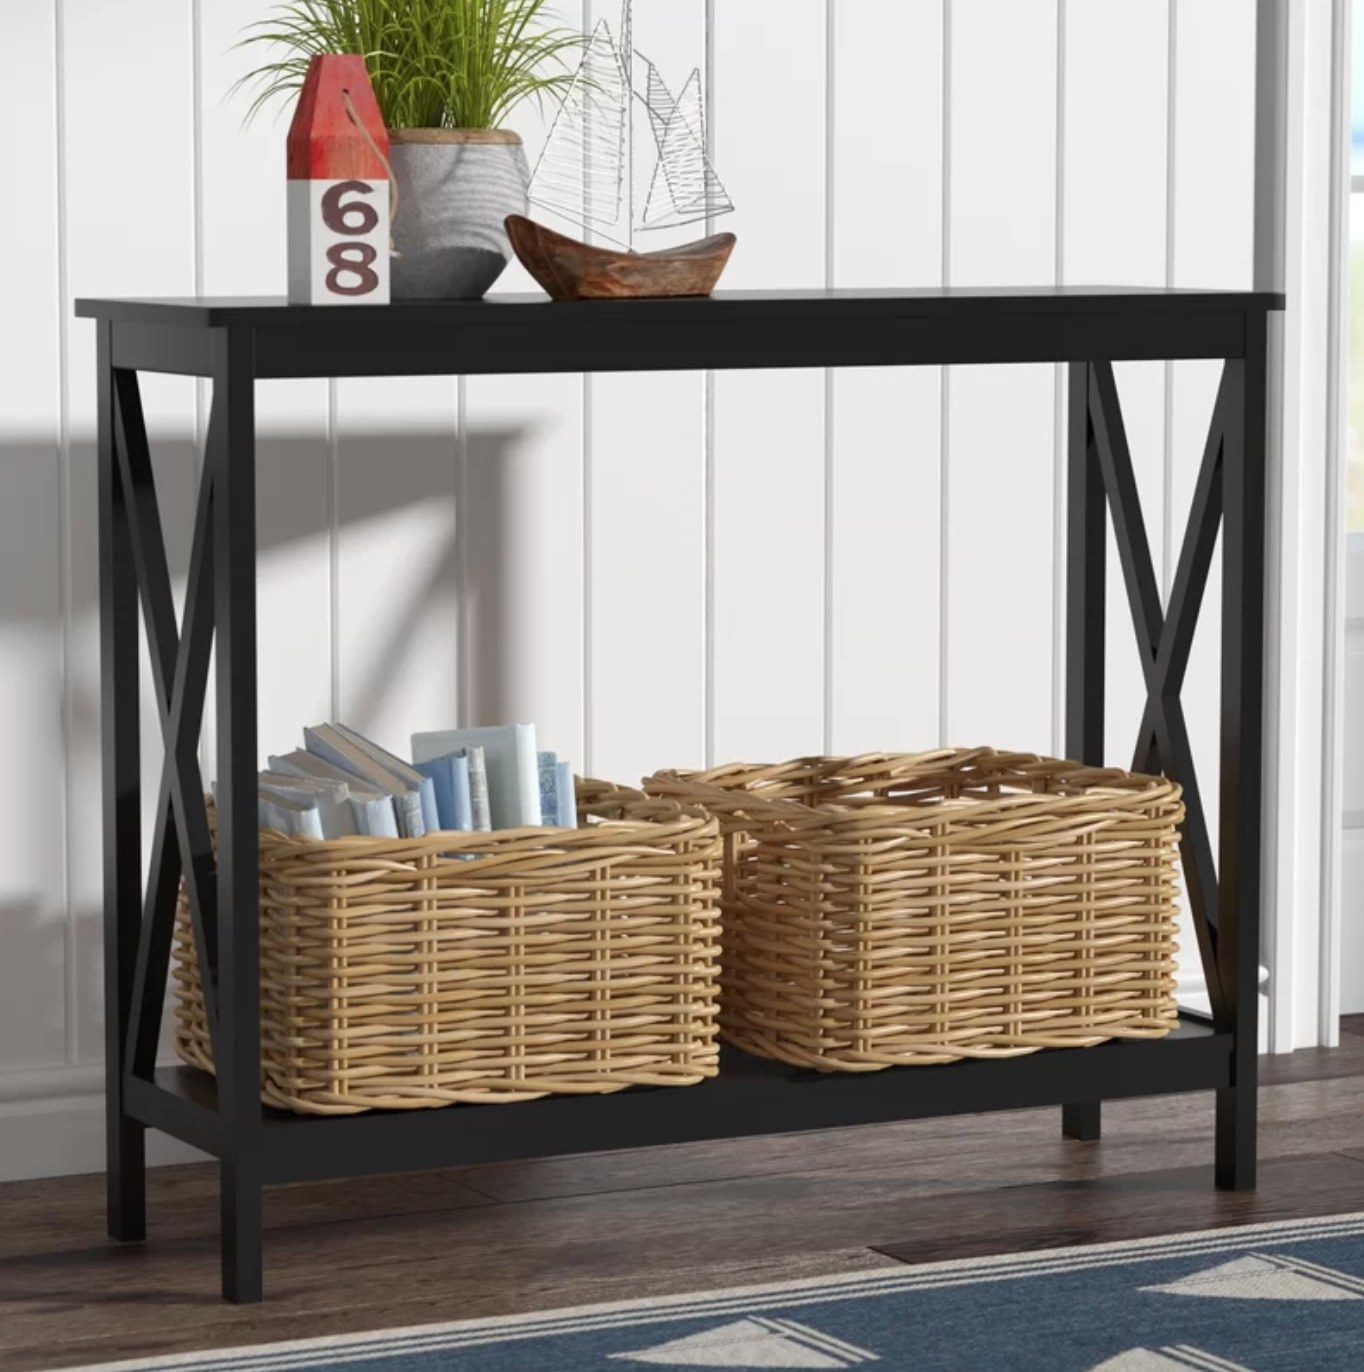 The console table in black